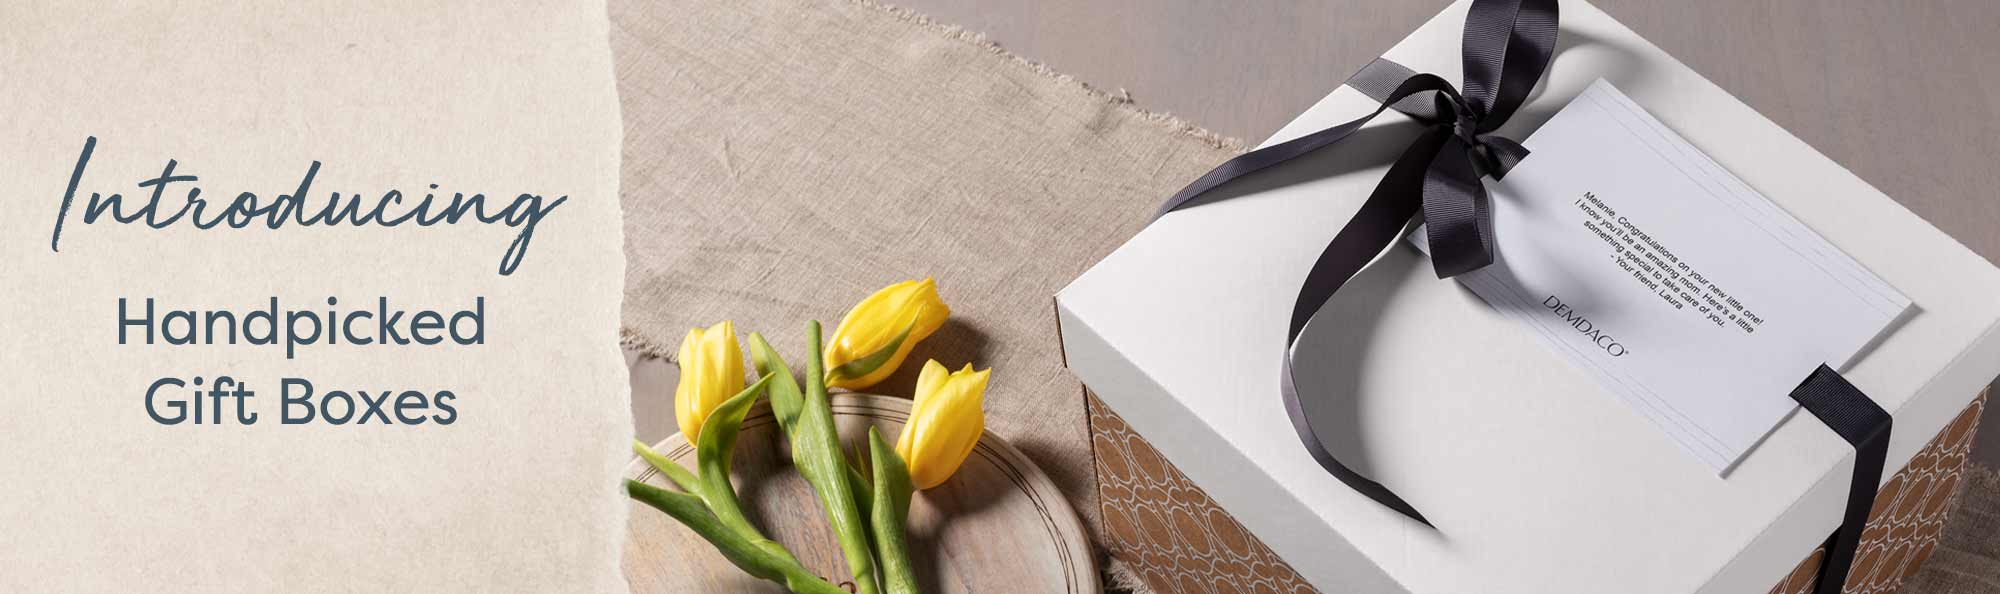 Introducing Handpicked Gift Boxes. White and gold box tied with a dark ribbon, next to yellow flowers.